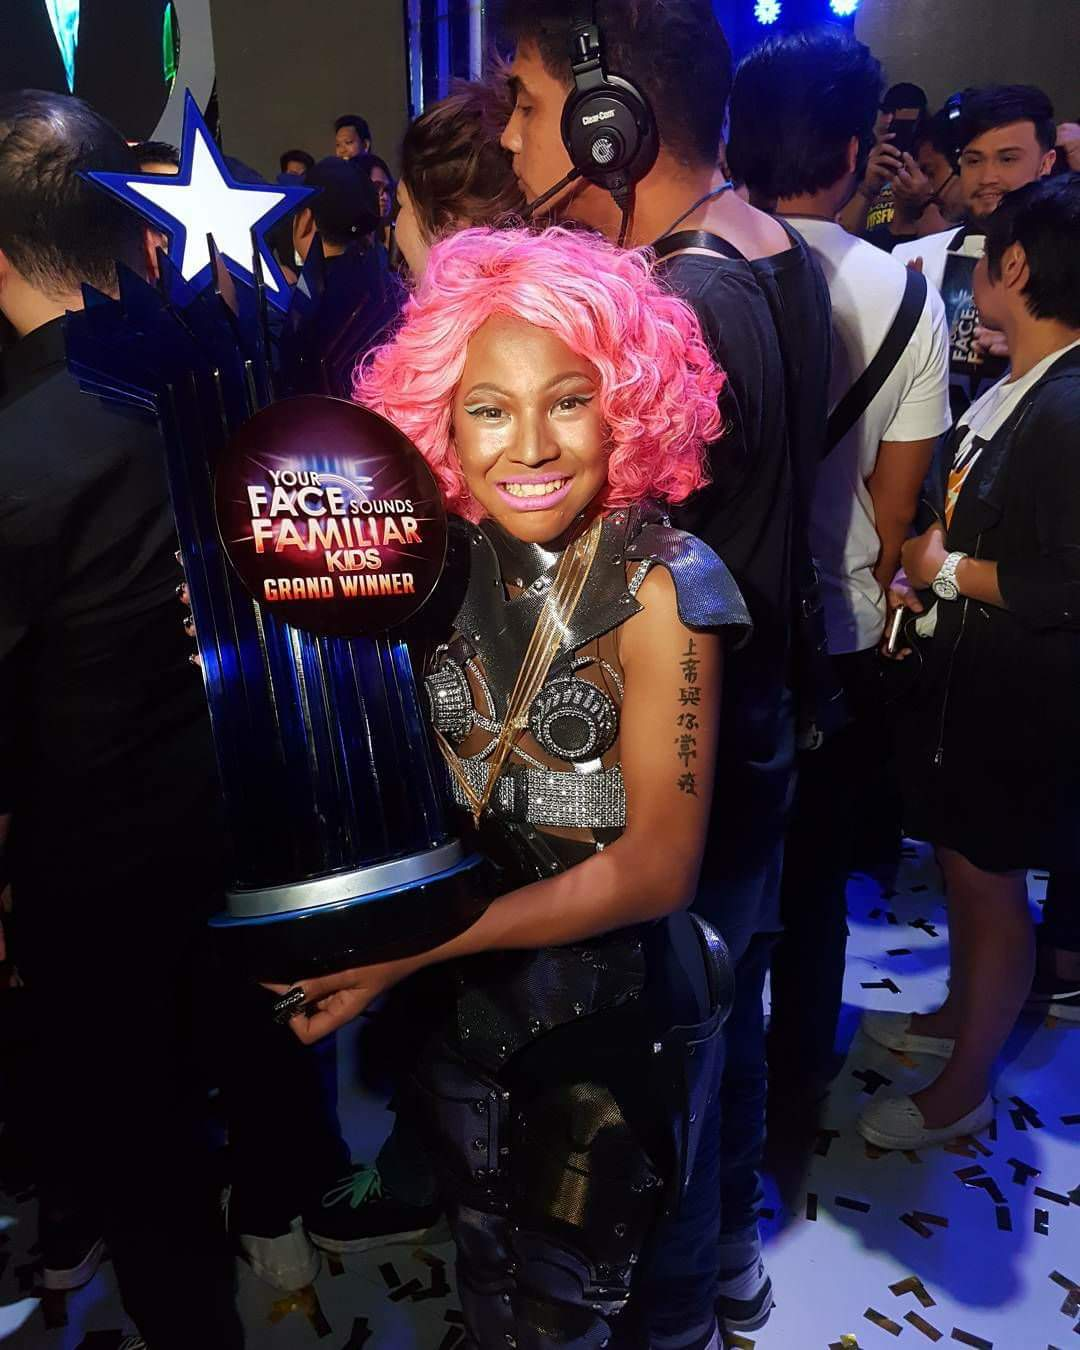 Teen Boy Who Transformed Into Nicki Minaj On Your Face Sounds Familiar Kids Talent Show 4